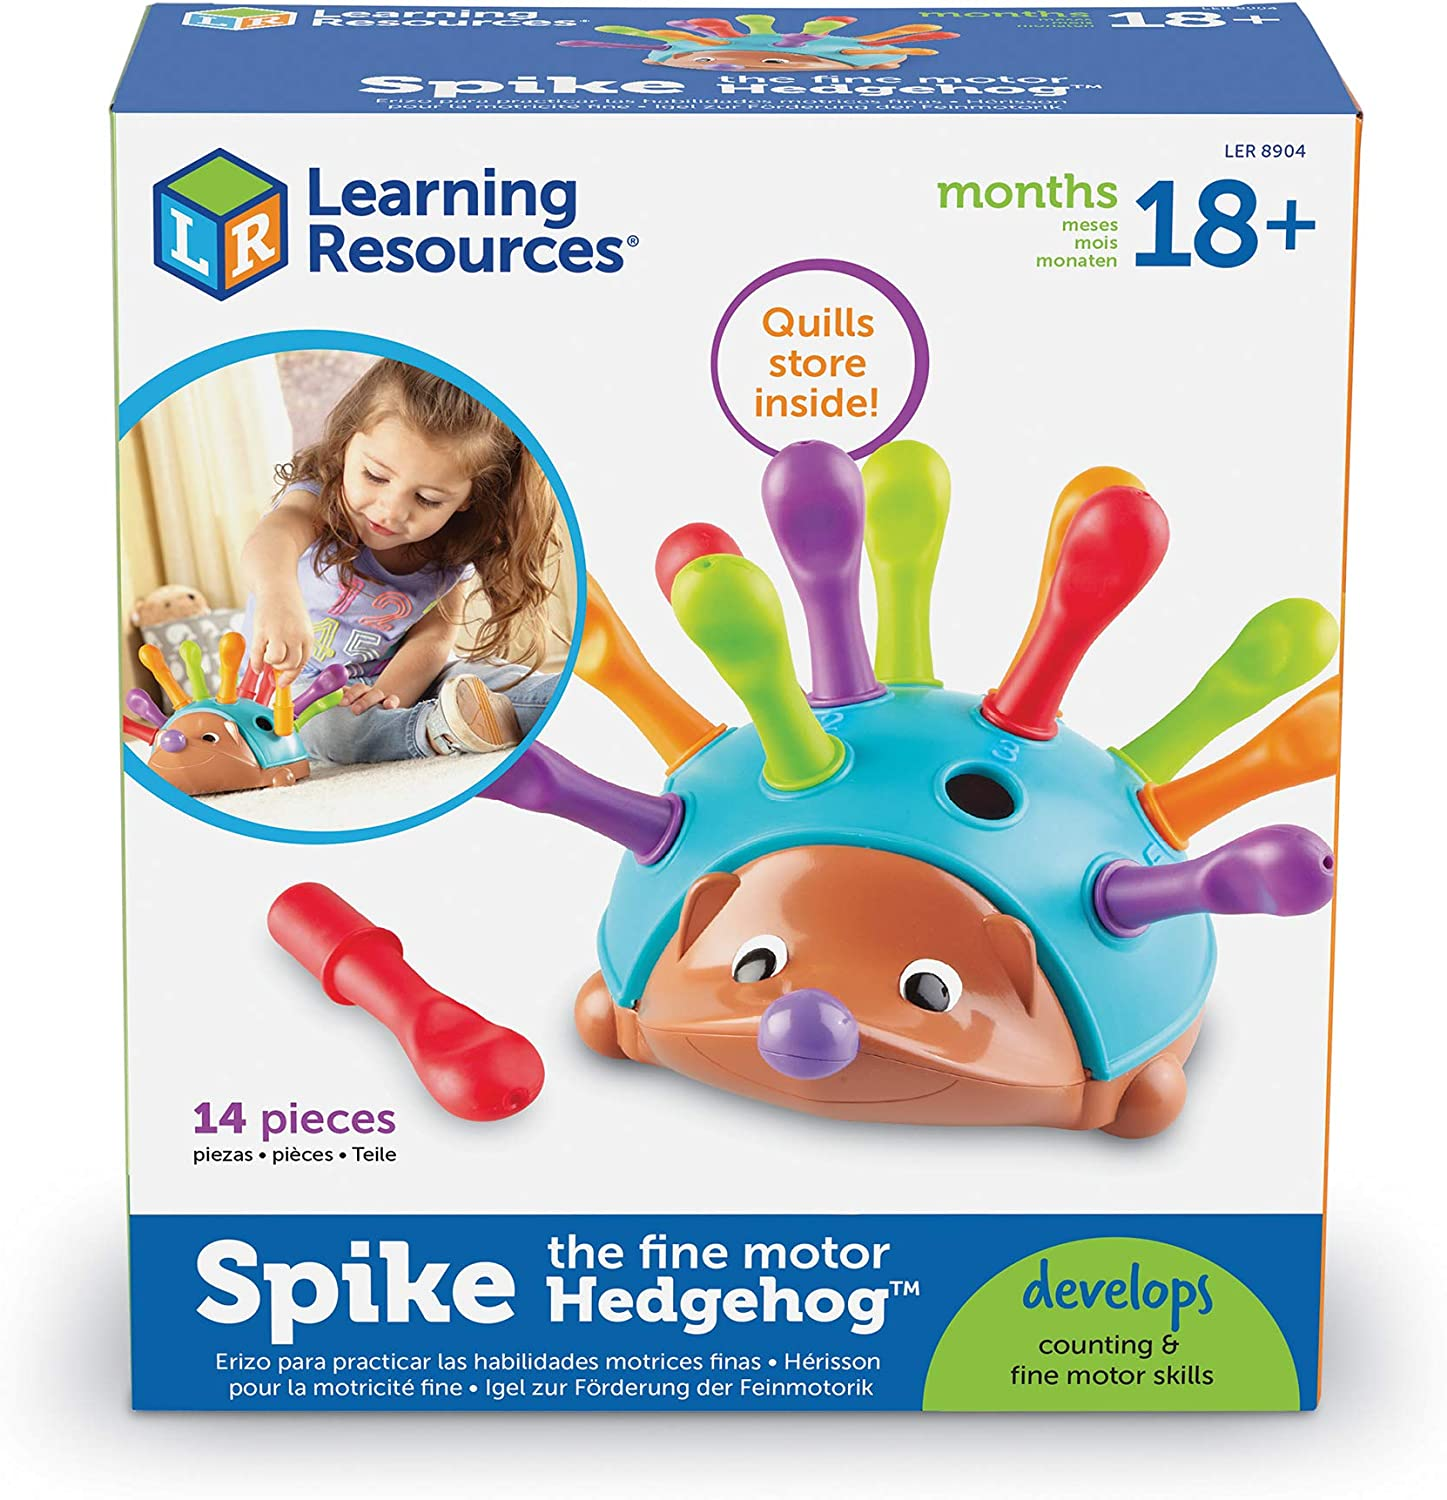 Learning Resources Spike the Fine Motor Hedgehog, Sensory, Fine Motor Toy, Hedgehog Toys for Toddler, Easter Gifts for Kids, Ages 18 months+